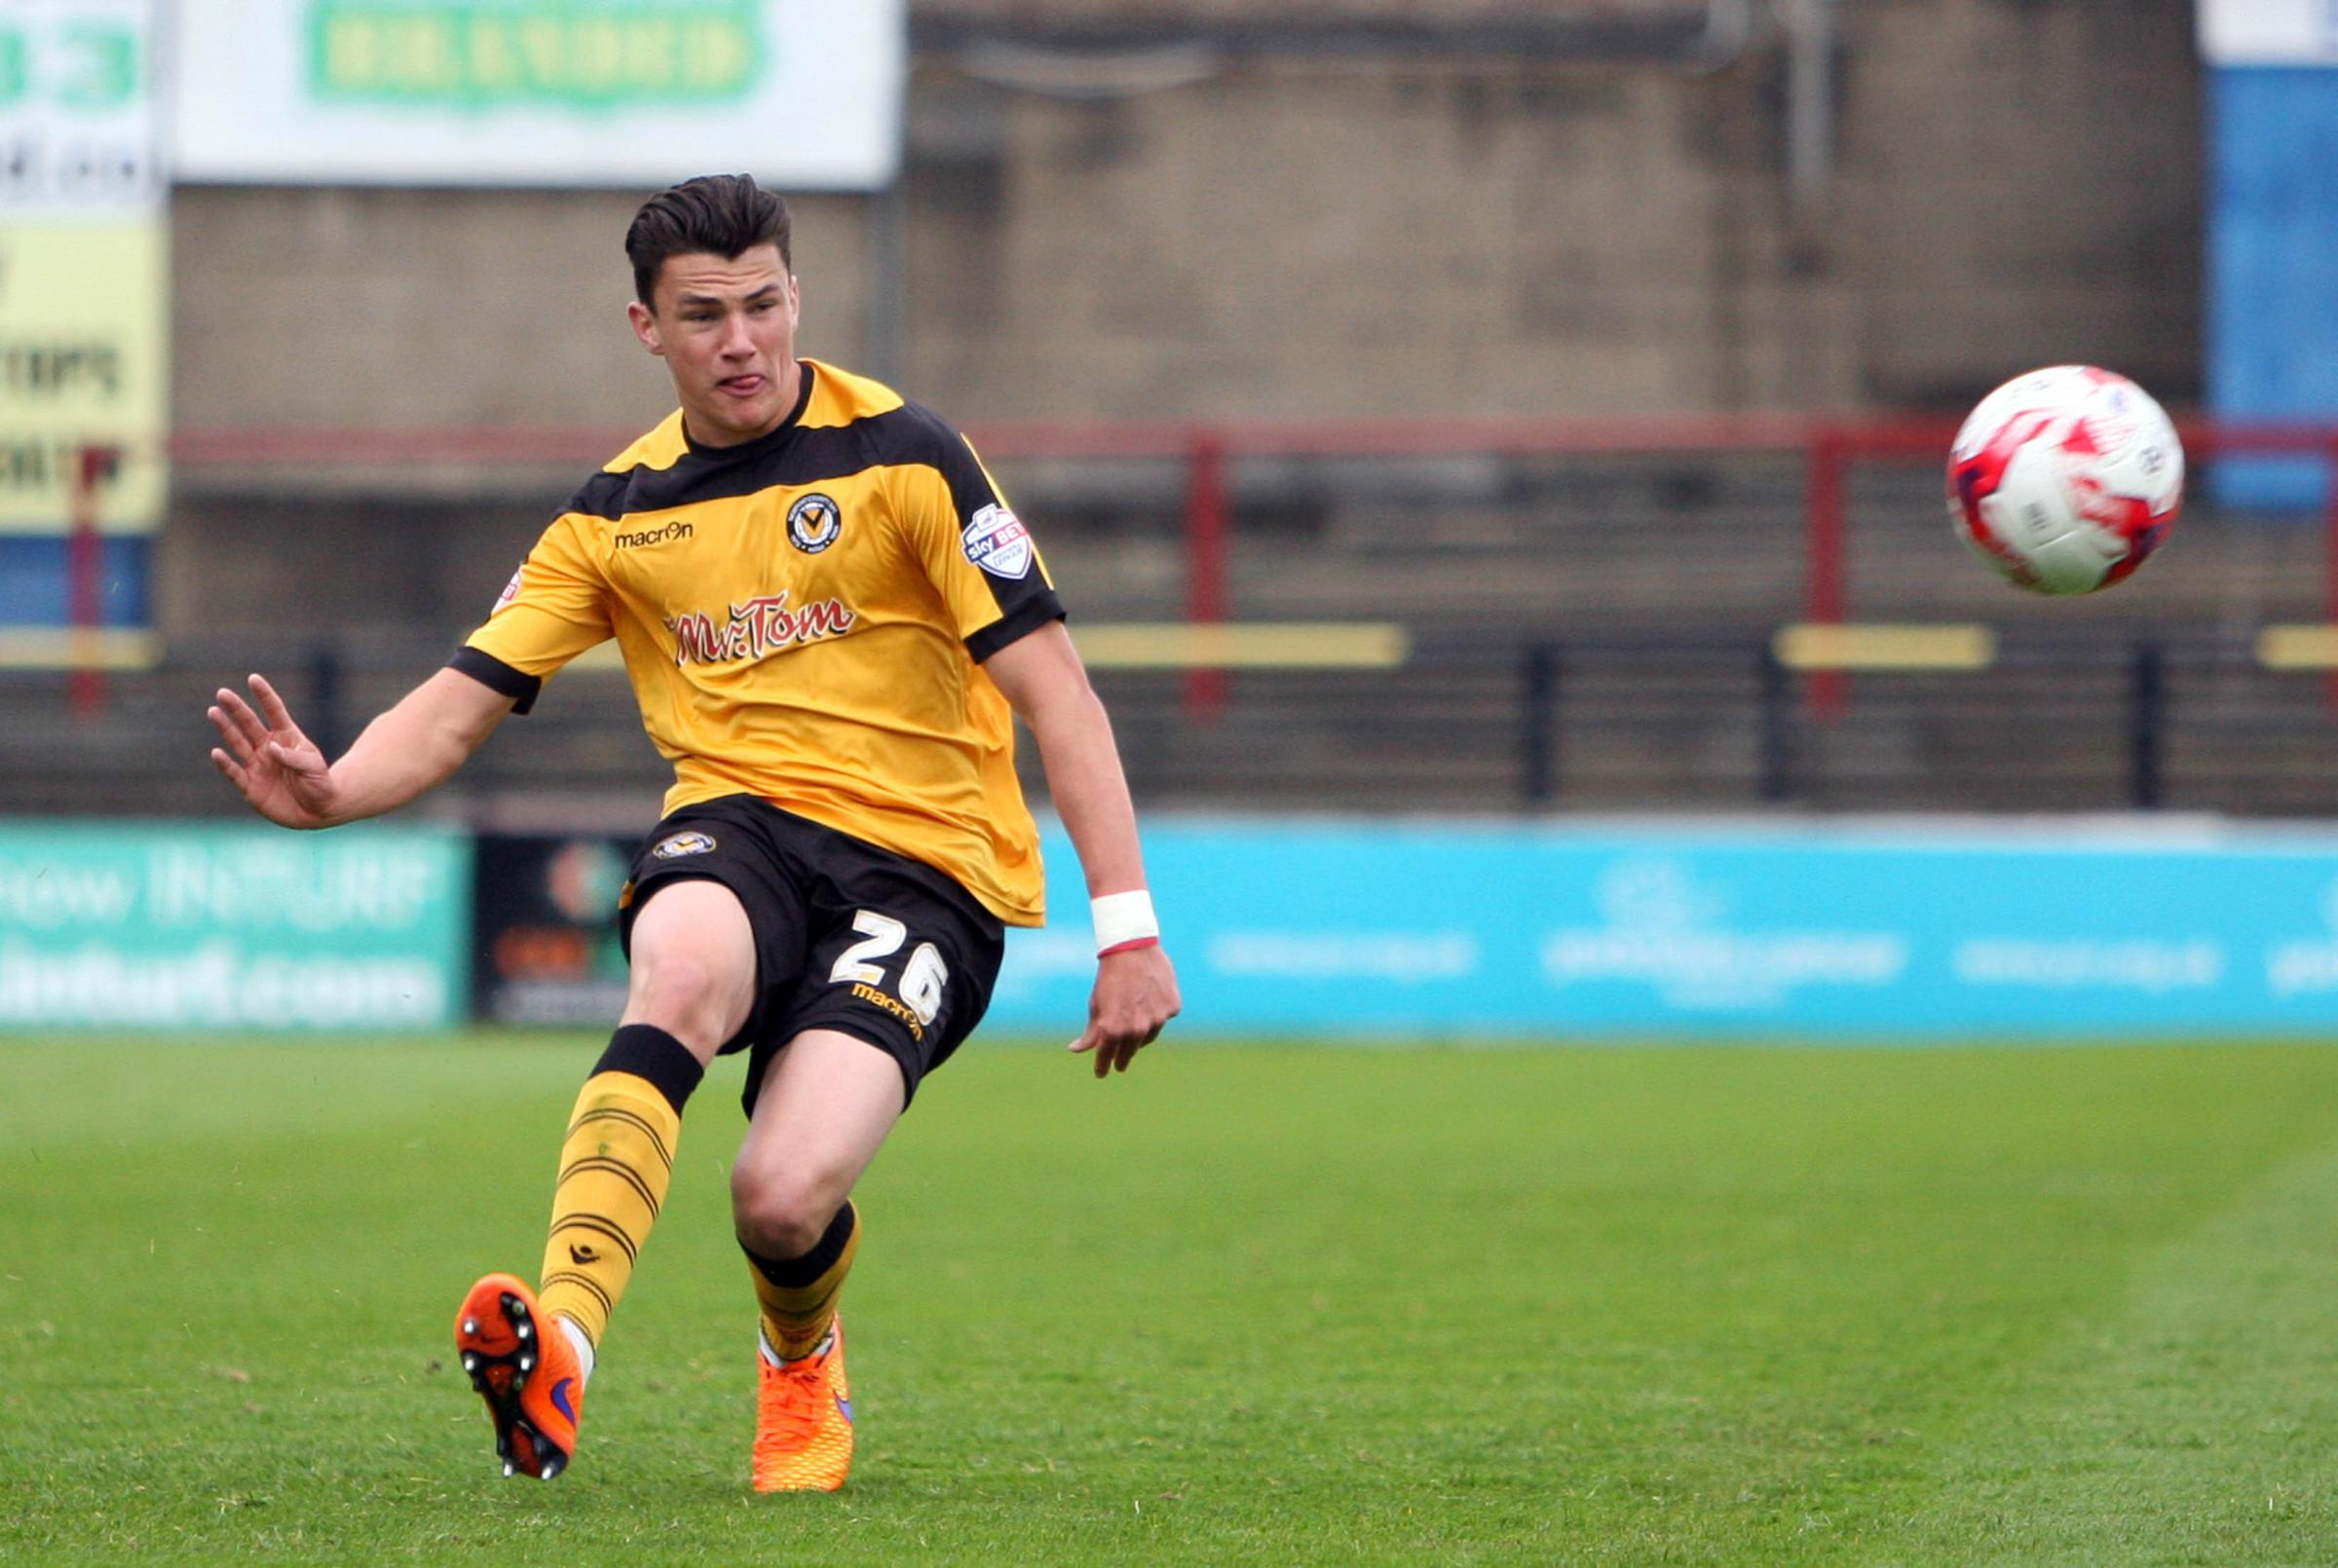 NATIONAL SERVICE: Former Newport County star Regan Poole